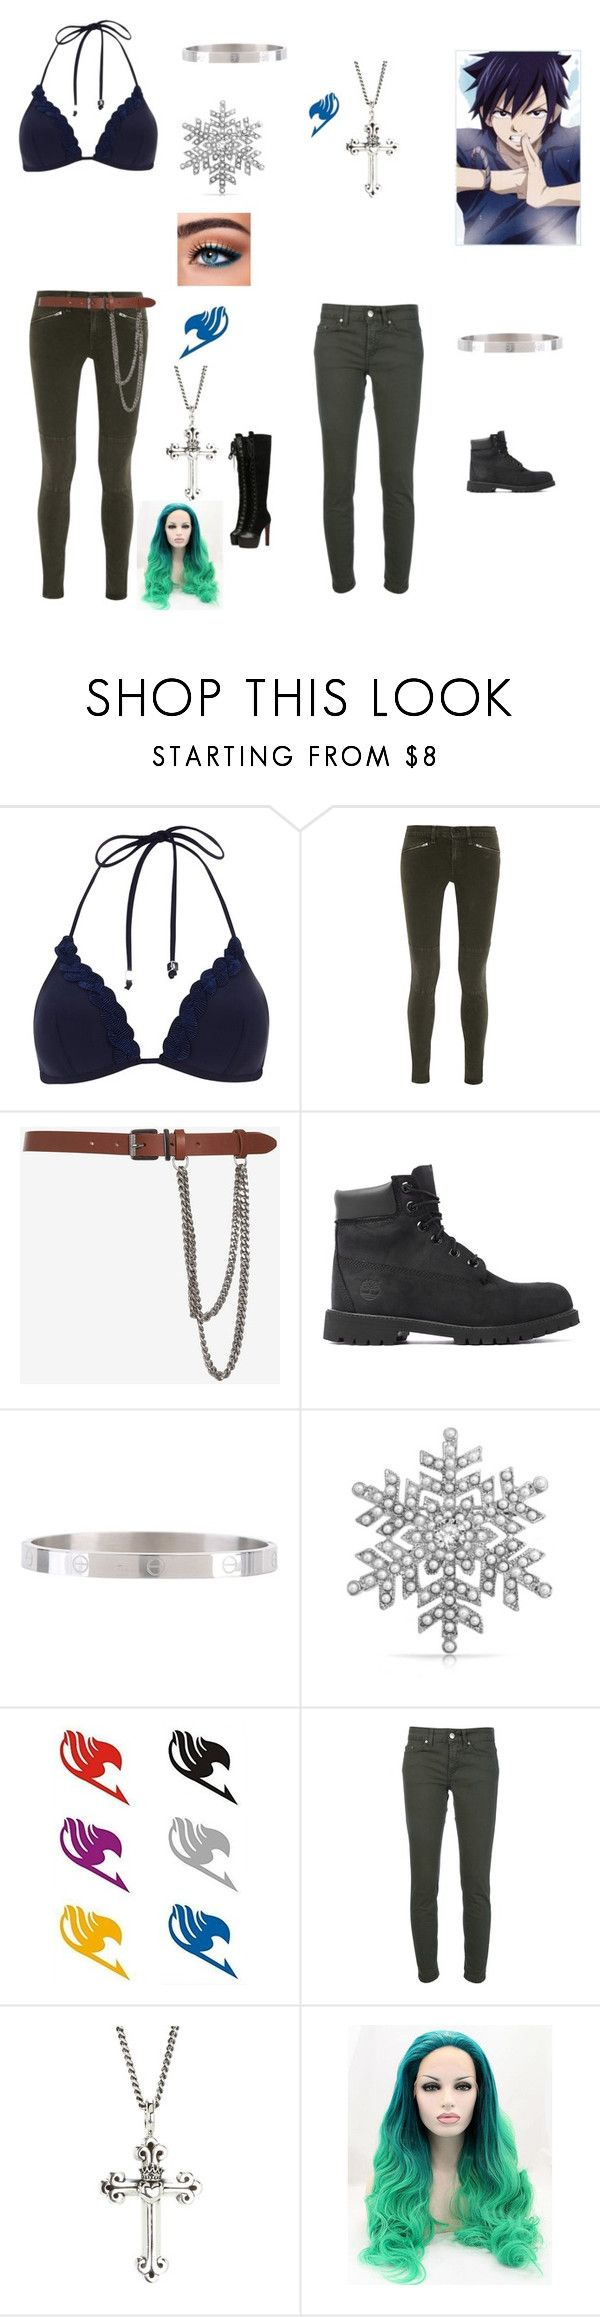 """""""My oc and Gray"""" by angle12345 ❤ liked on Polyvore featuring River Island, rag & bone/JEAN, Barbara Bui, Timberland, Bling Jewelry, Anastasia Beverly Hills, Dondup and King Baby Studio"""